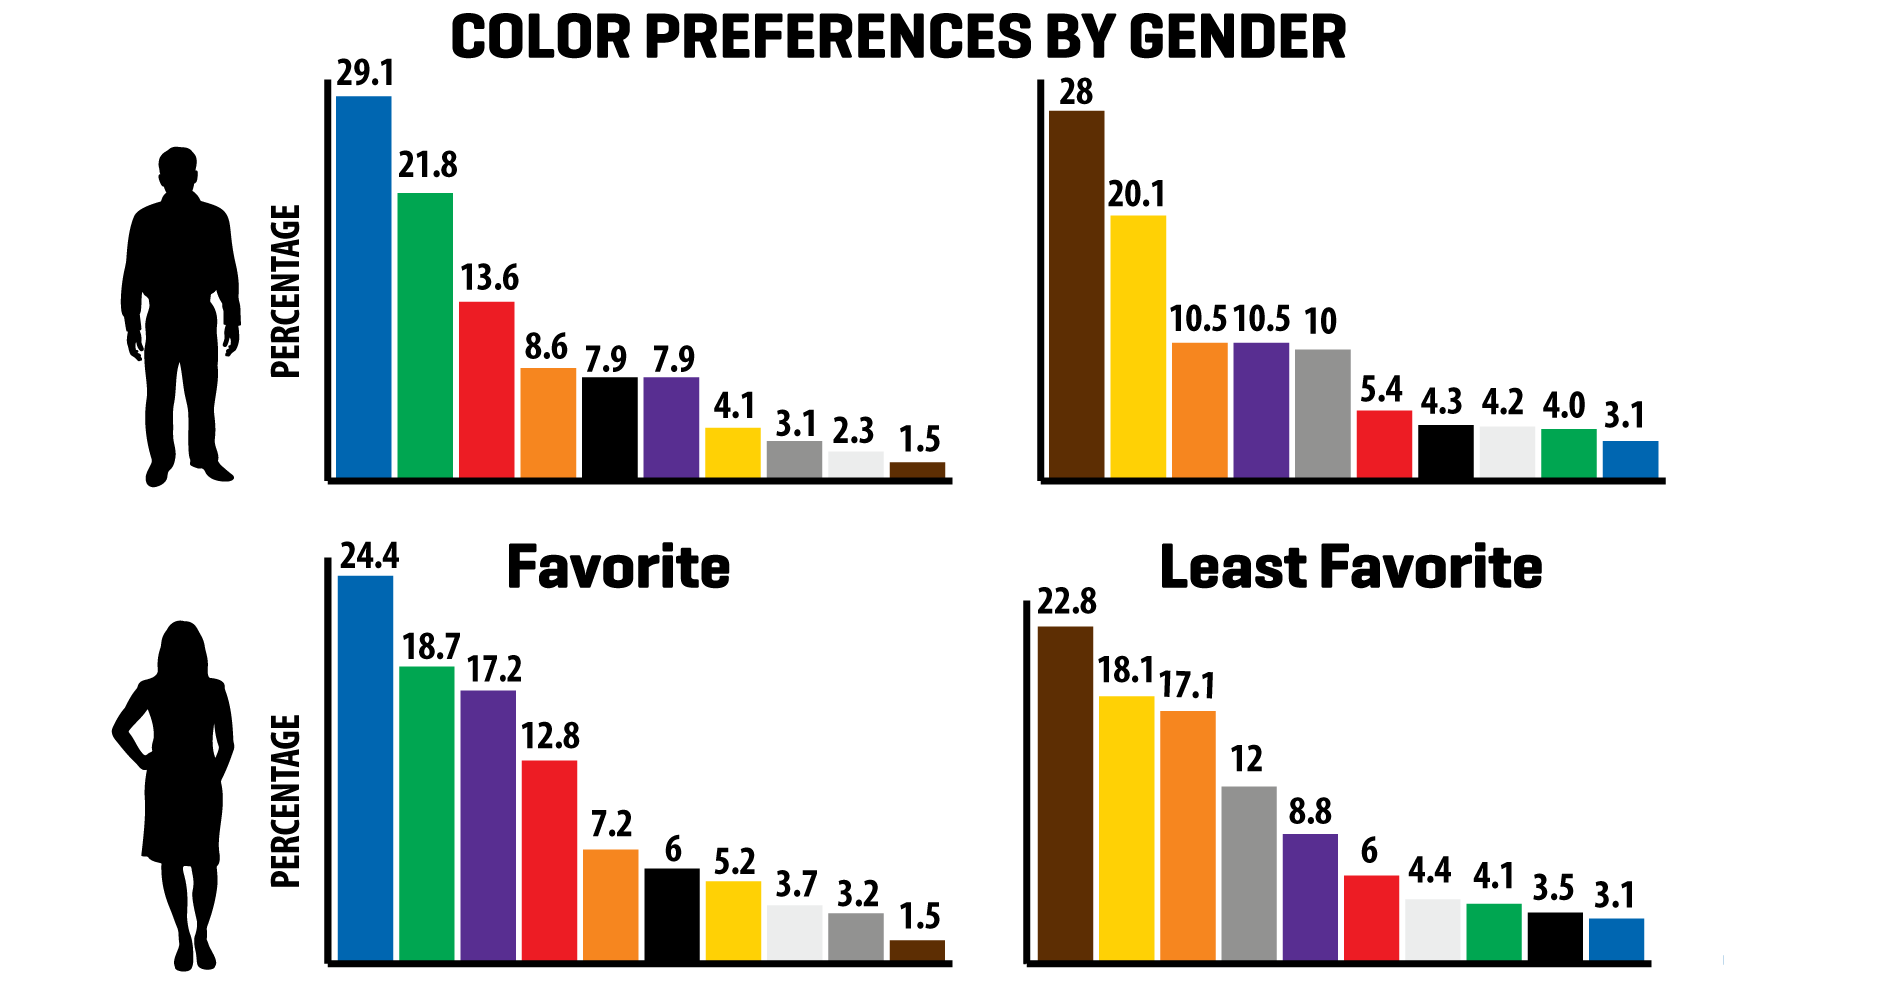 favorite and least favorite colors by gender